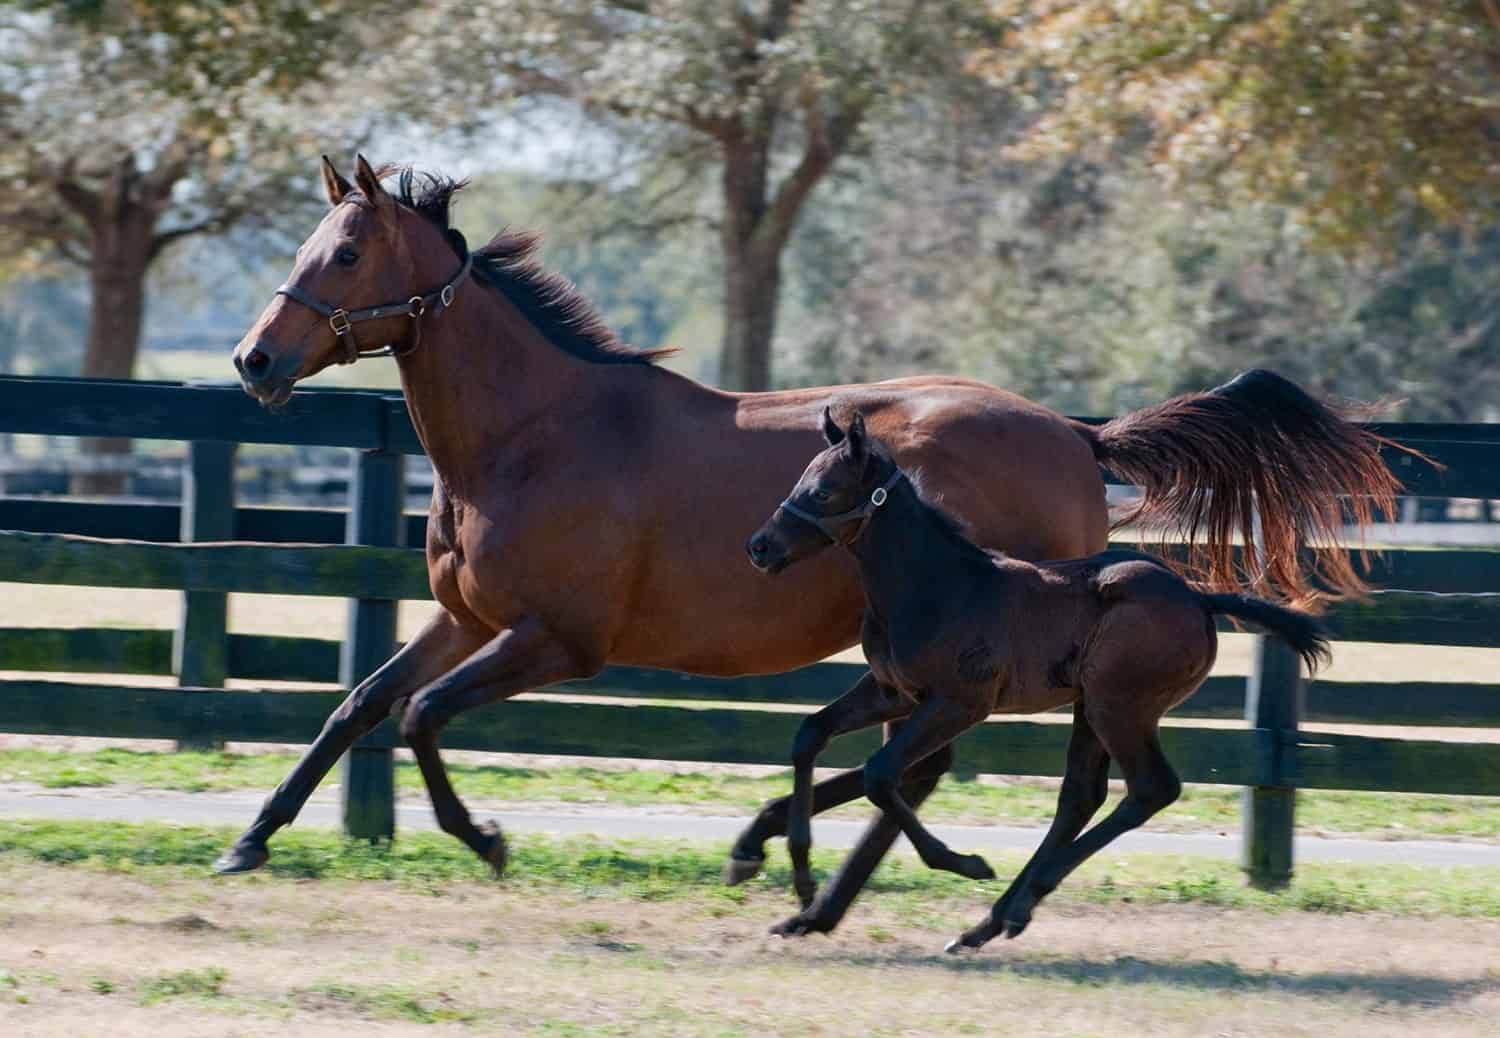 Young Foal Exercise The Horse